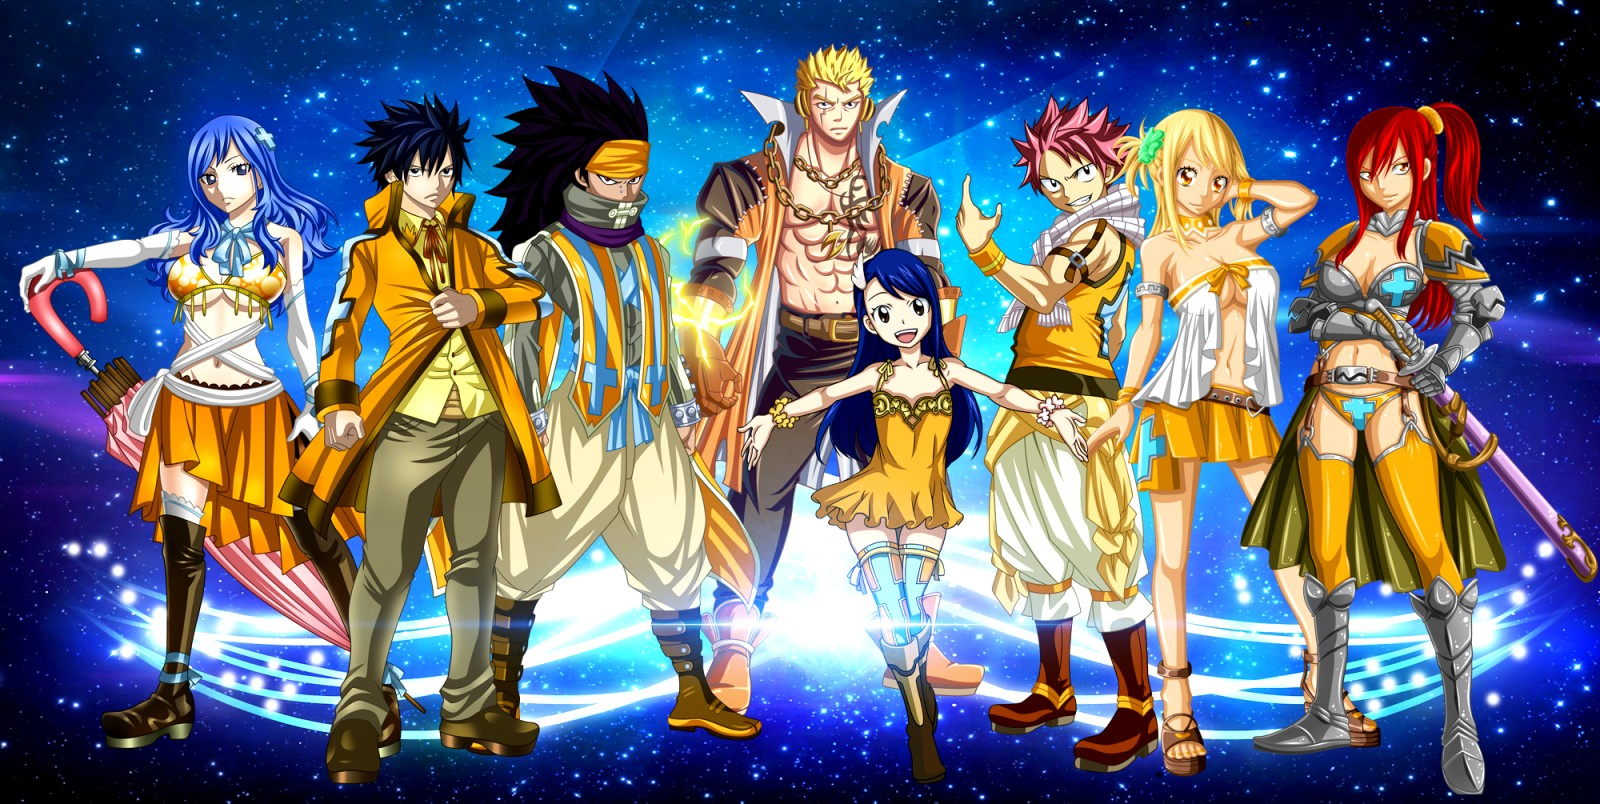 Fairytail Anime Wallpapers Group (62+)